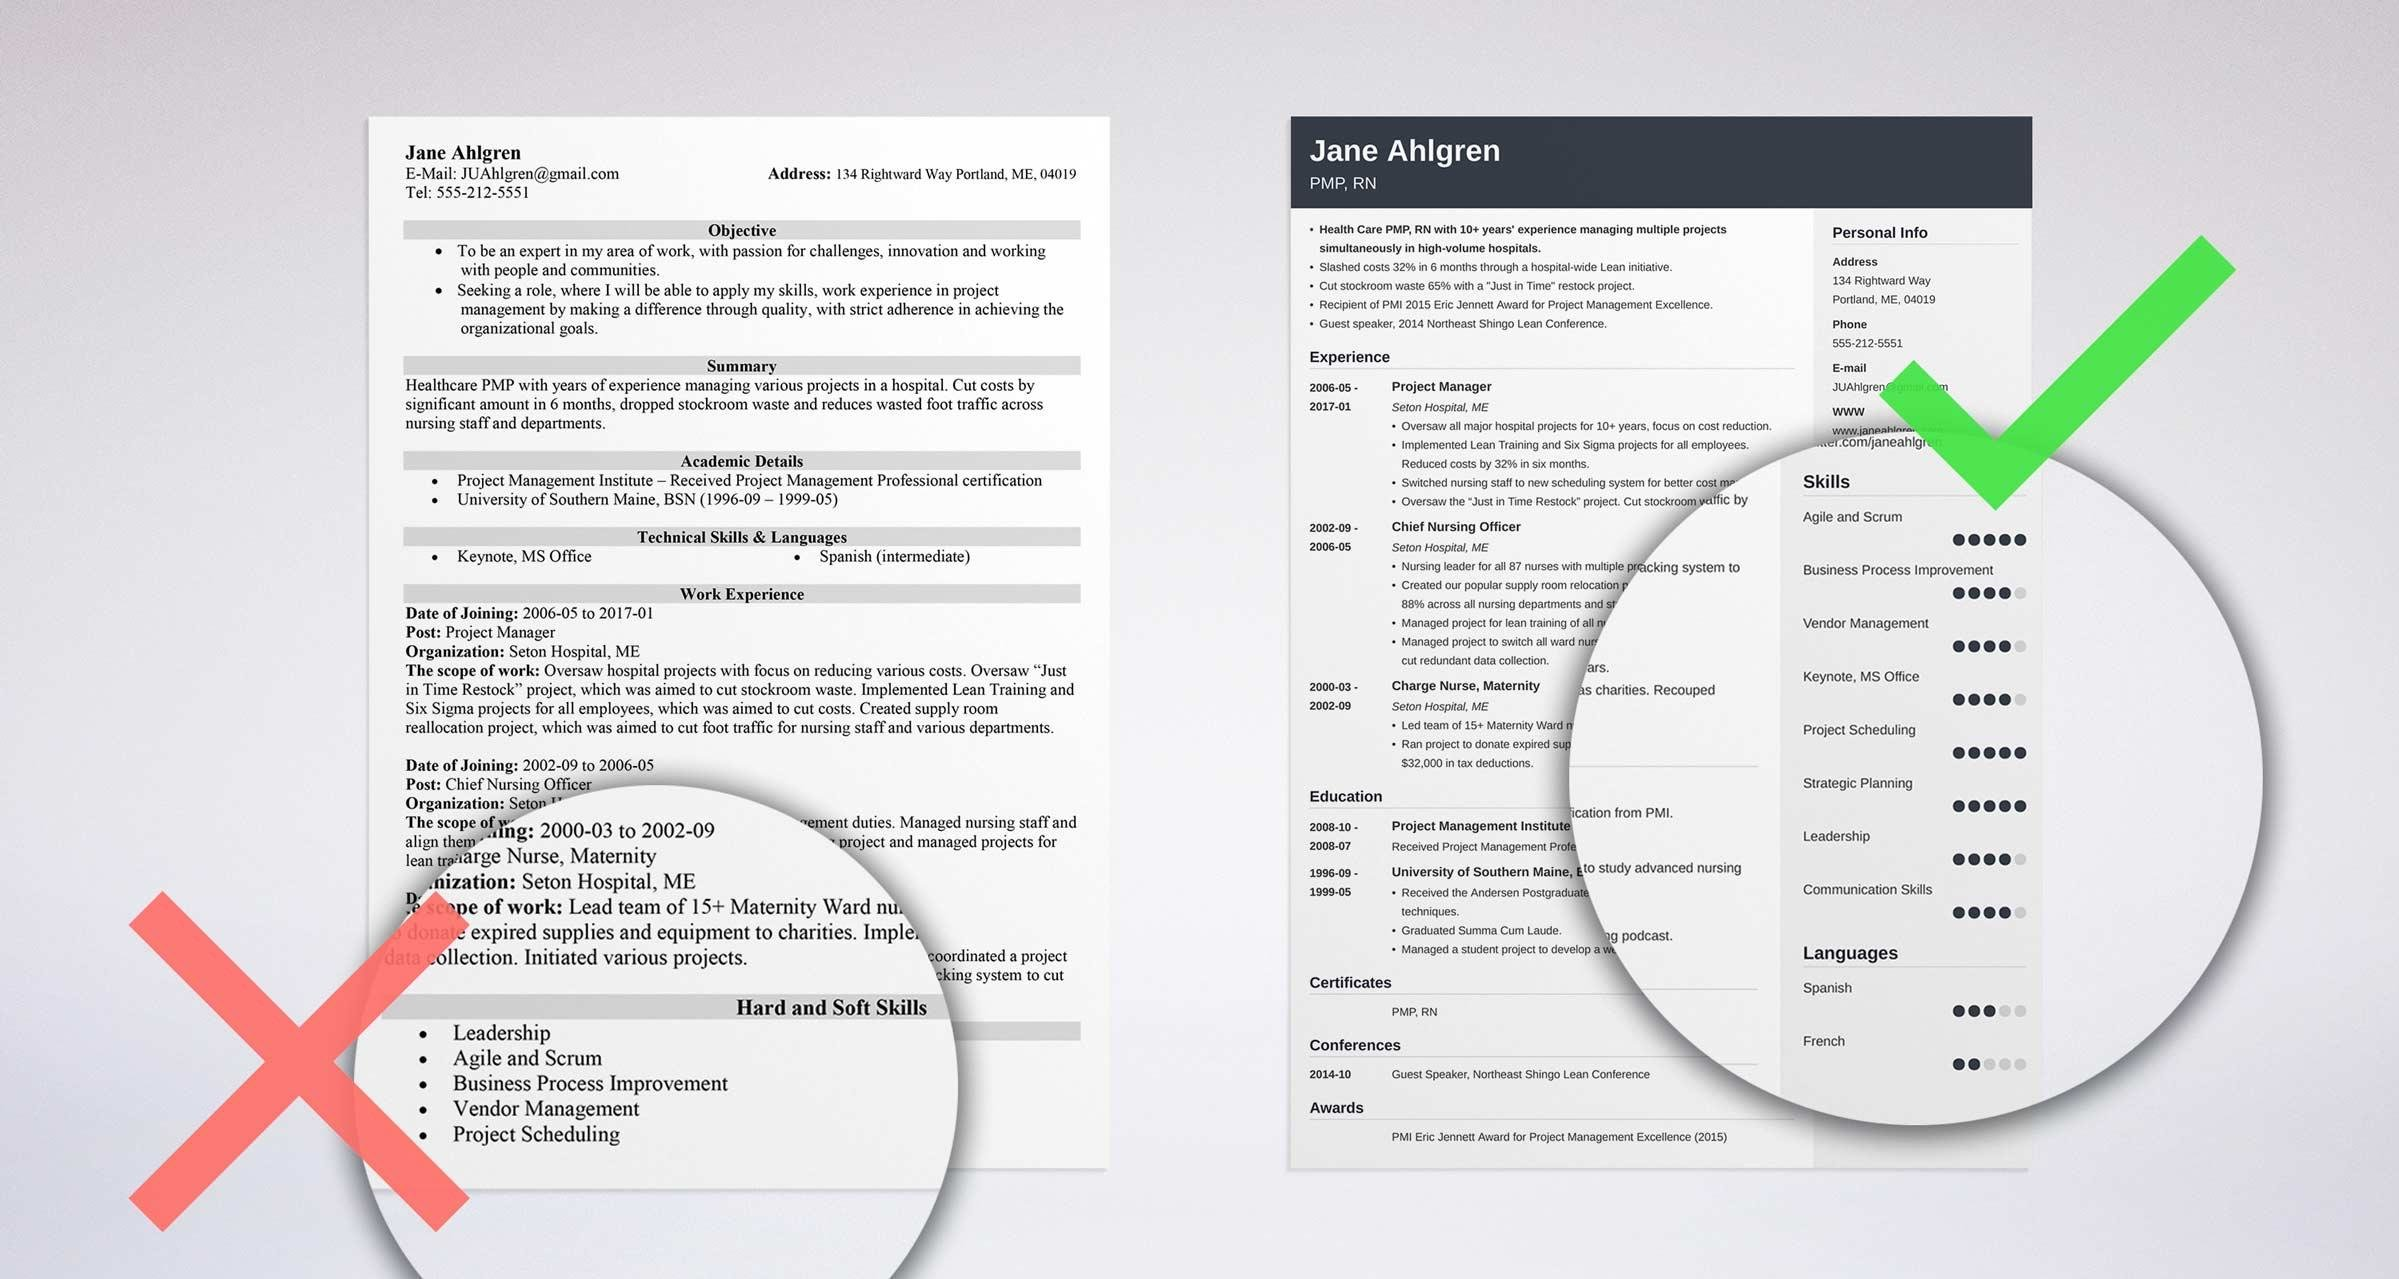 best computer skills for resume software employers another word knowledge on resume1 law Resume Another Word For Knowledge On Resume